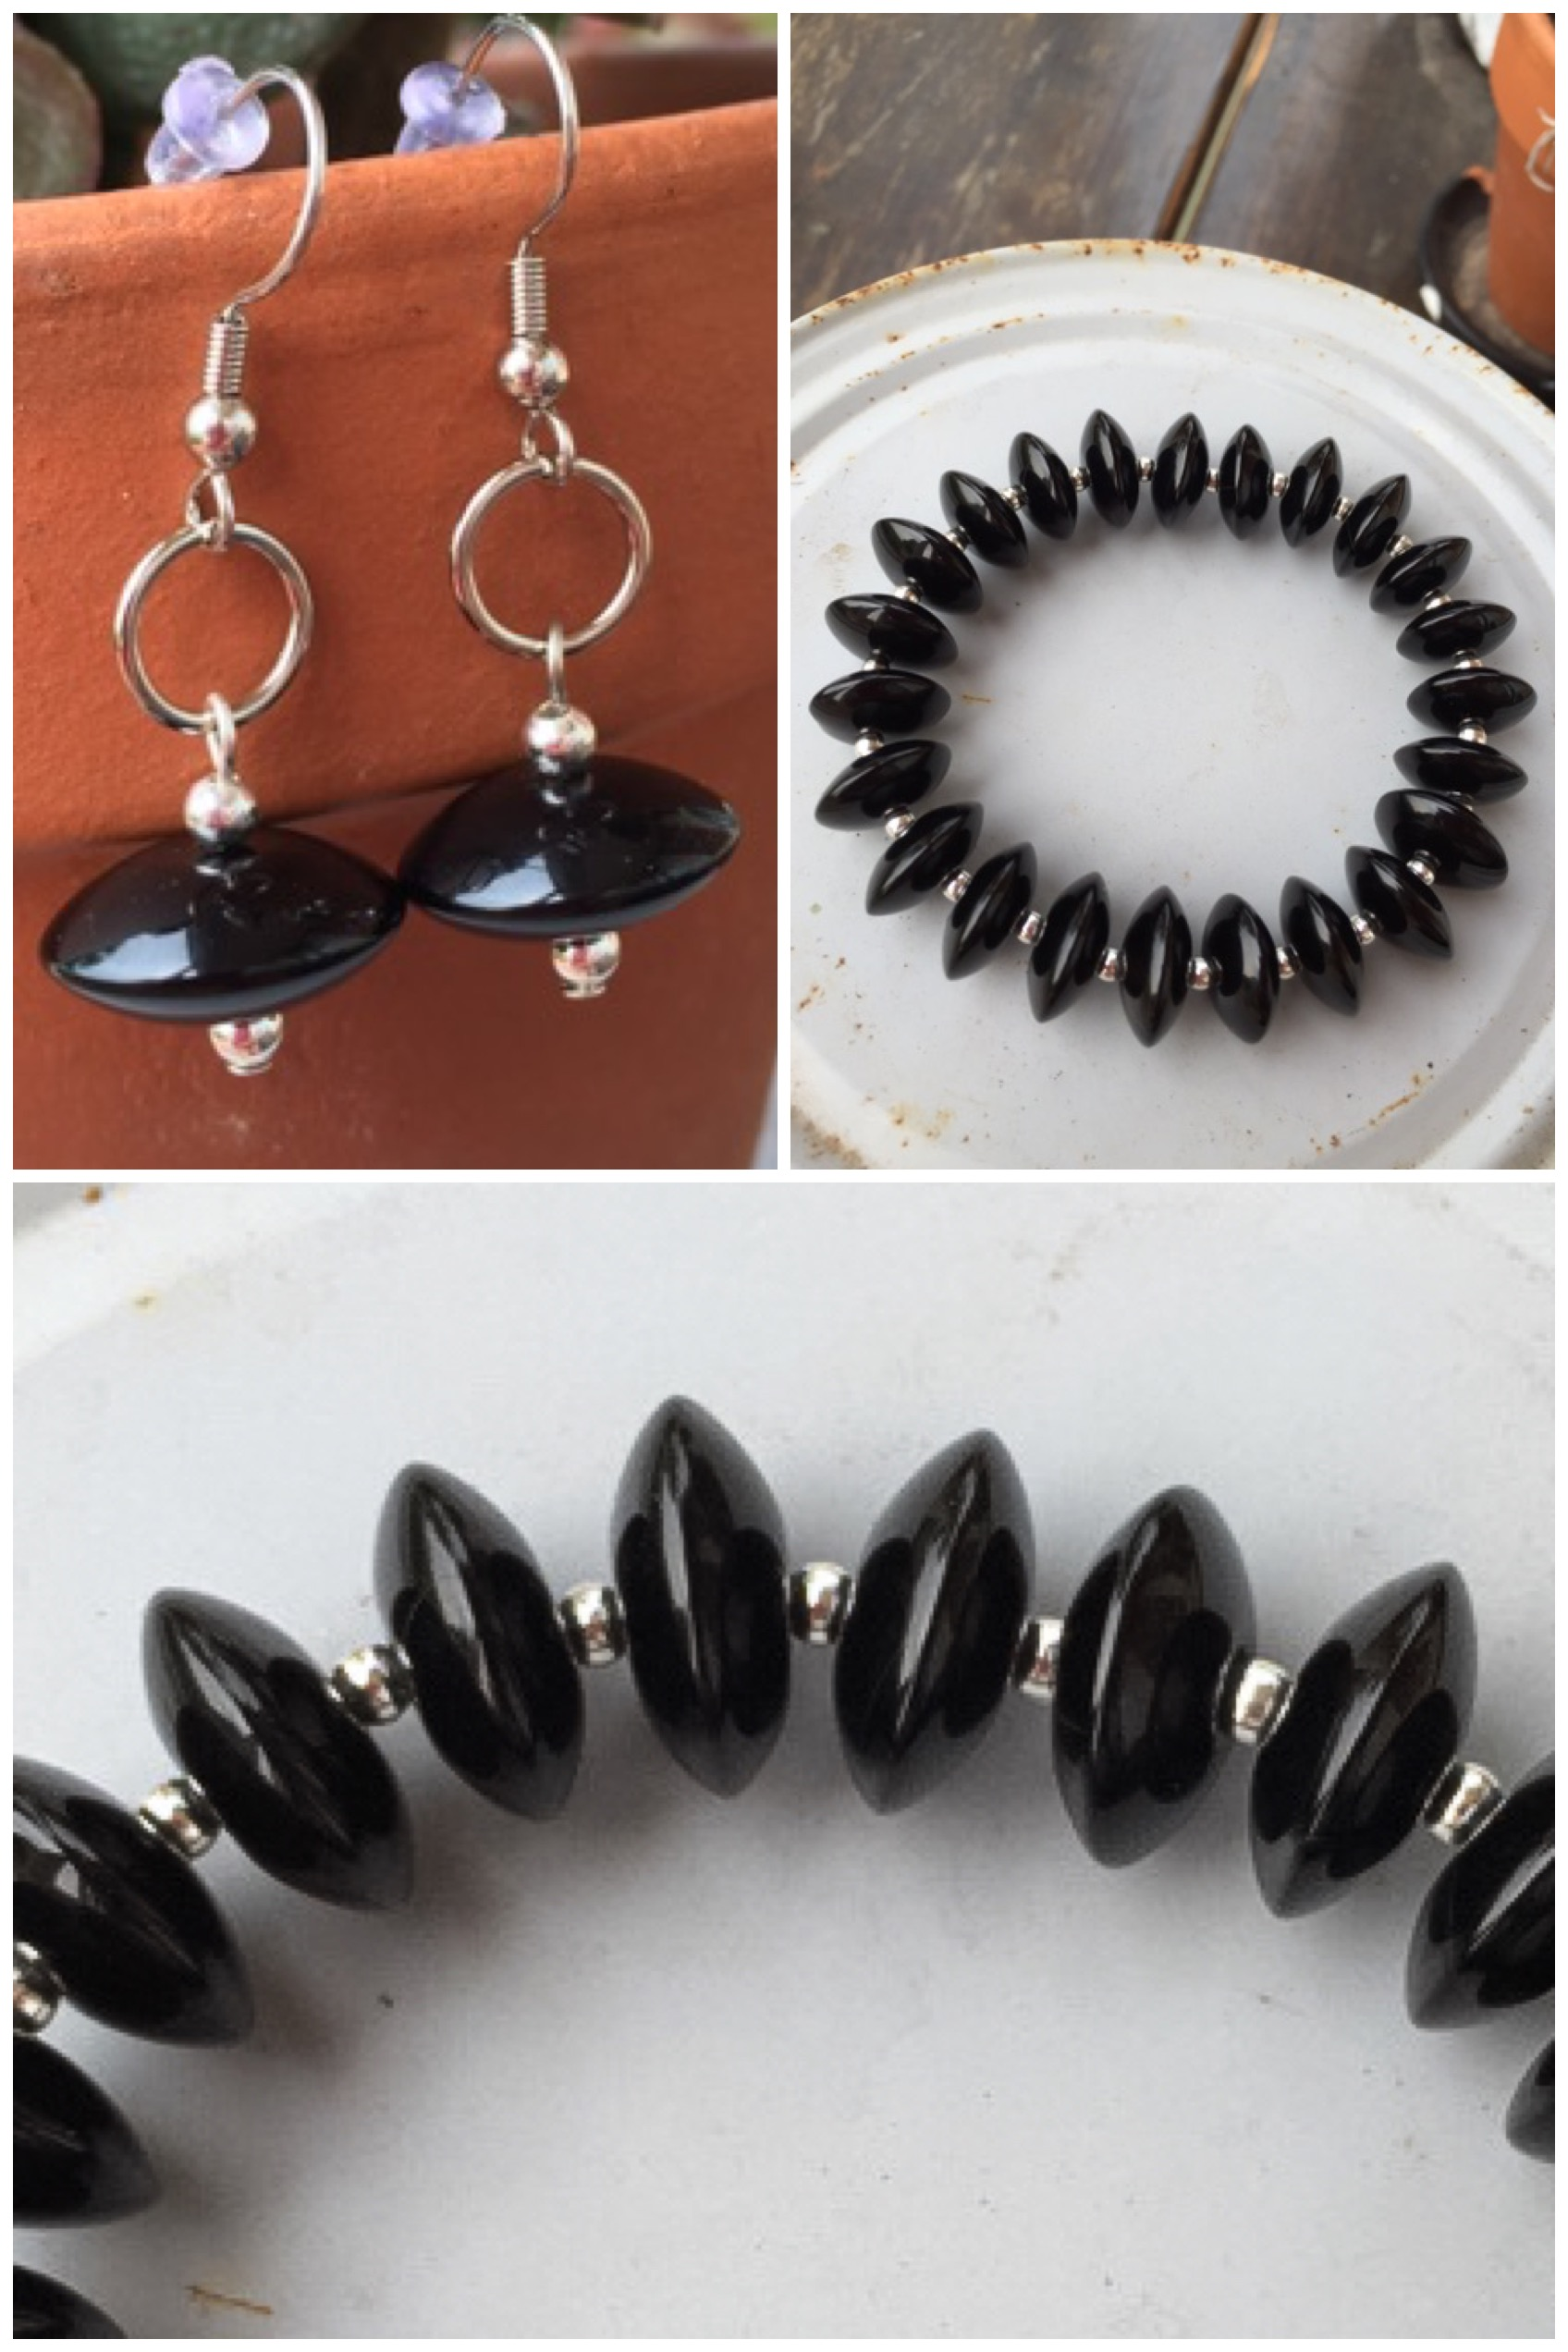 Black Onyx Agate Gemstone Bracelet/Earring Jewelry Set